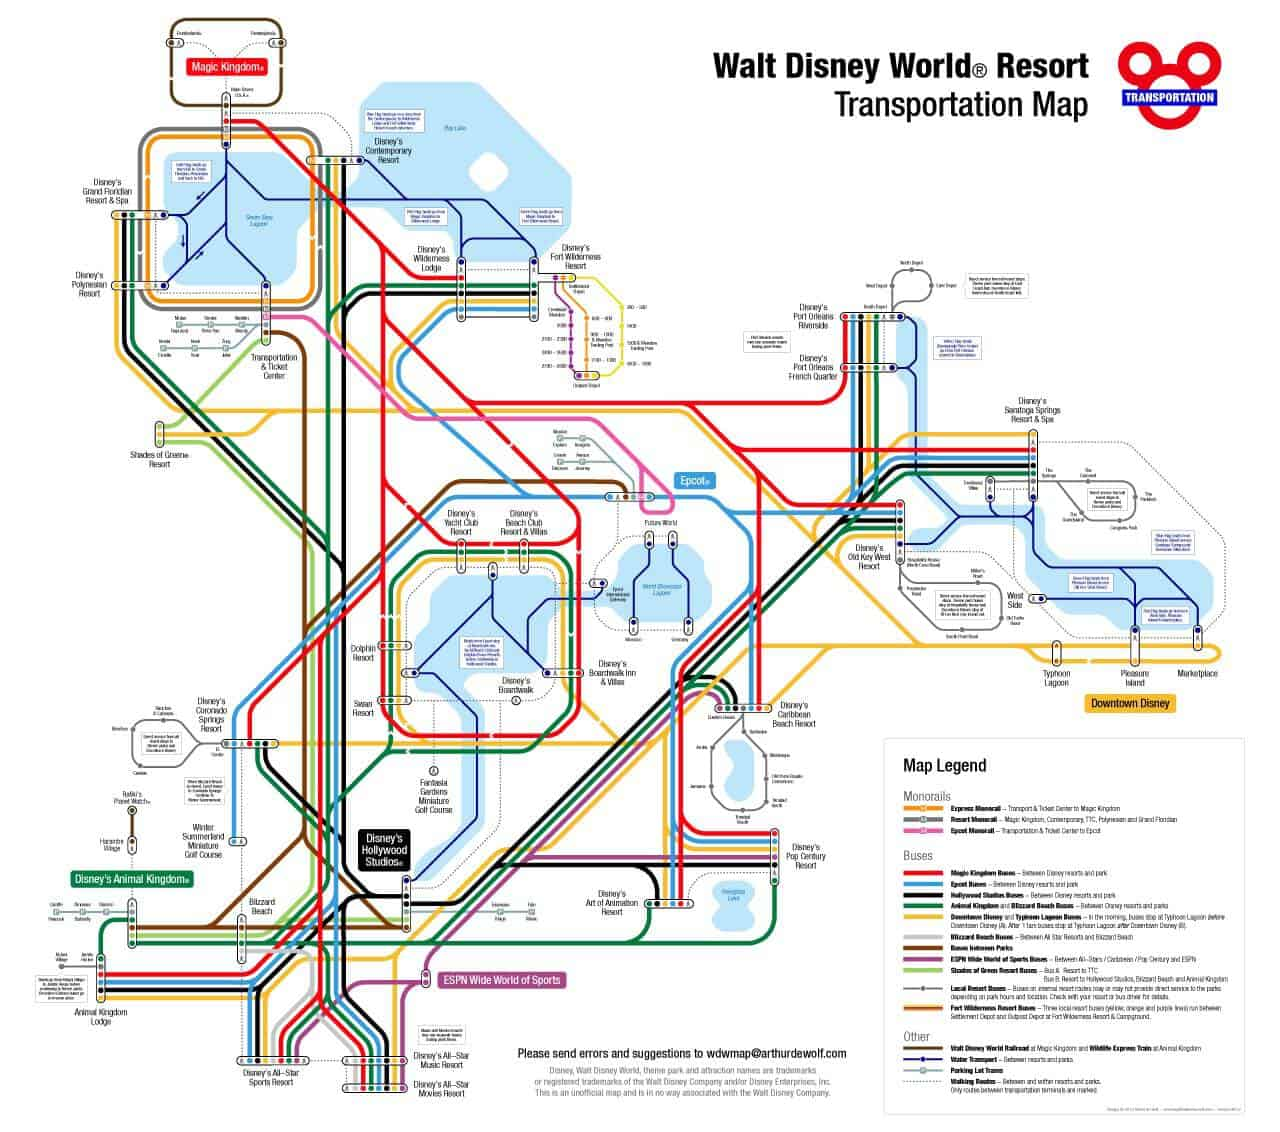 Disney Monorail Map How to navigate with Disney World transportation Disney Monorail Map